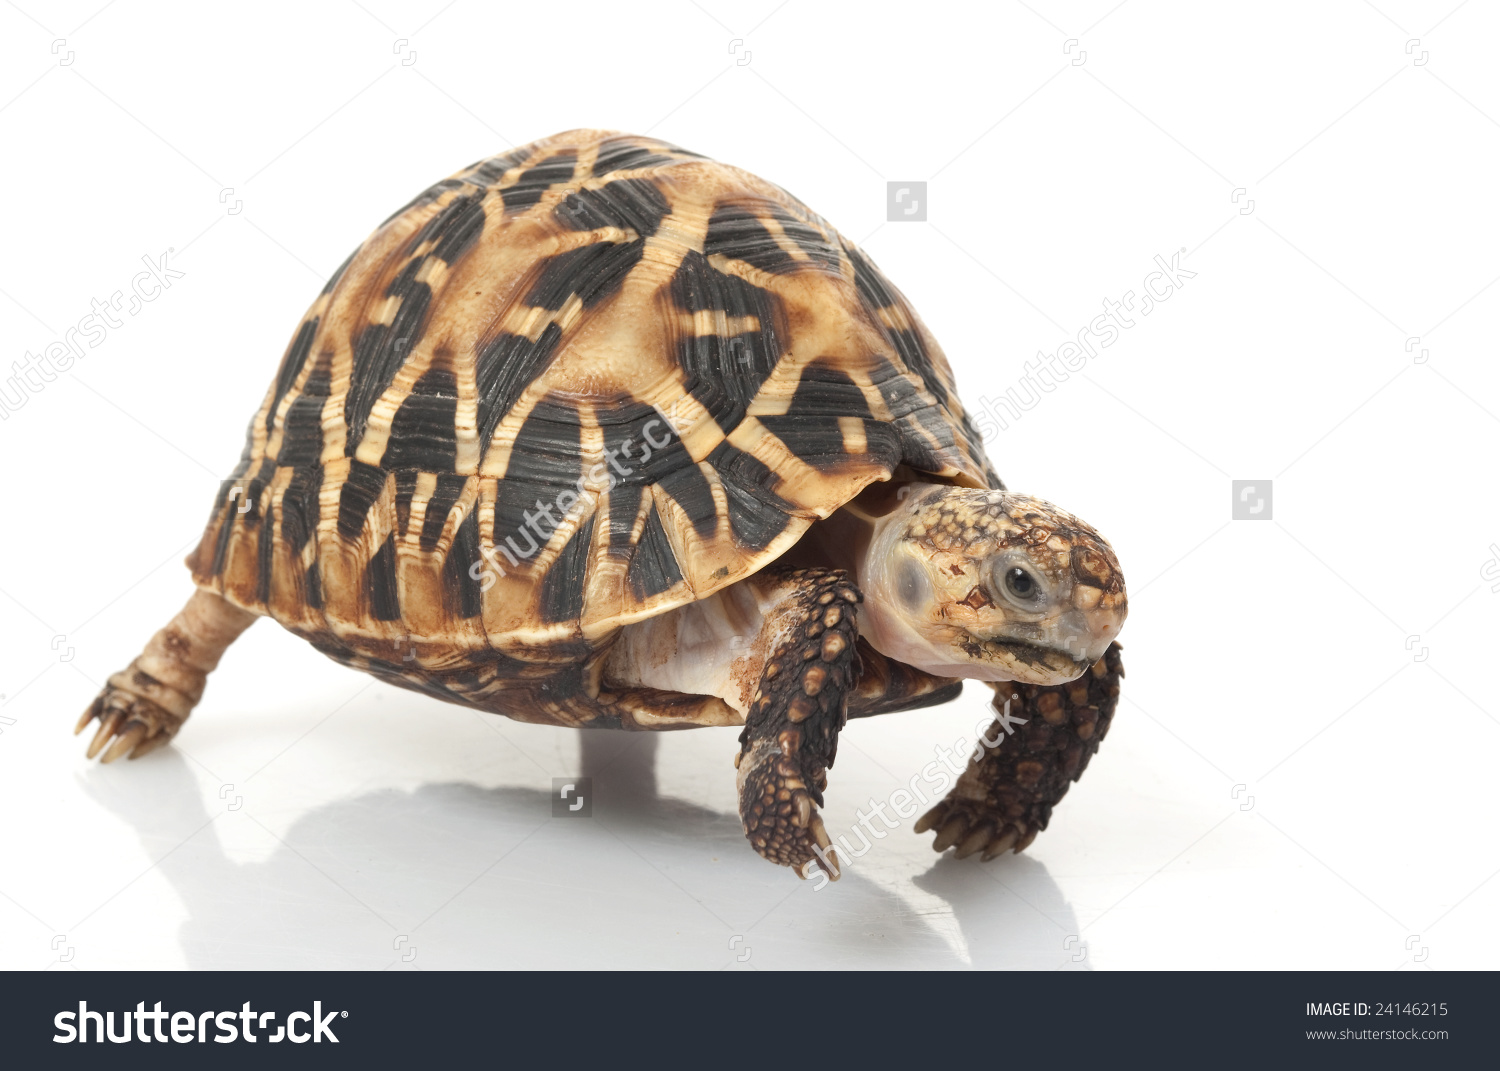 Indian Star Tortoise clipart #8, Download drawings